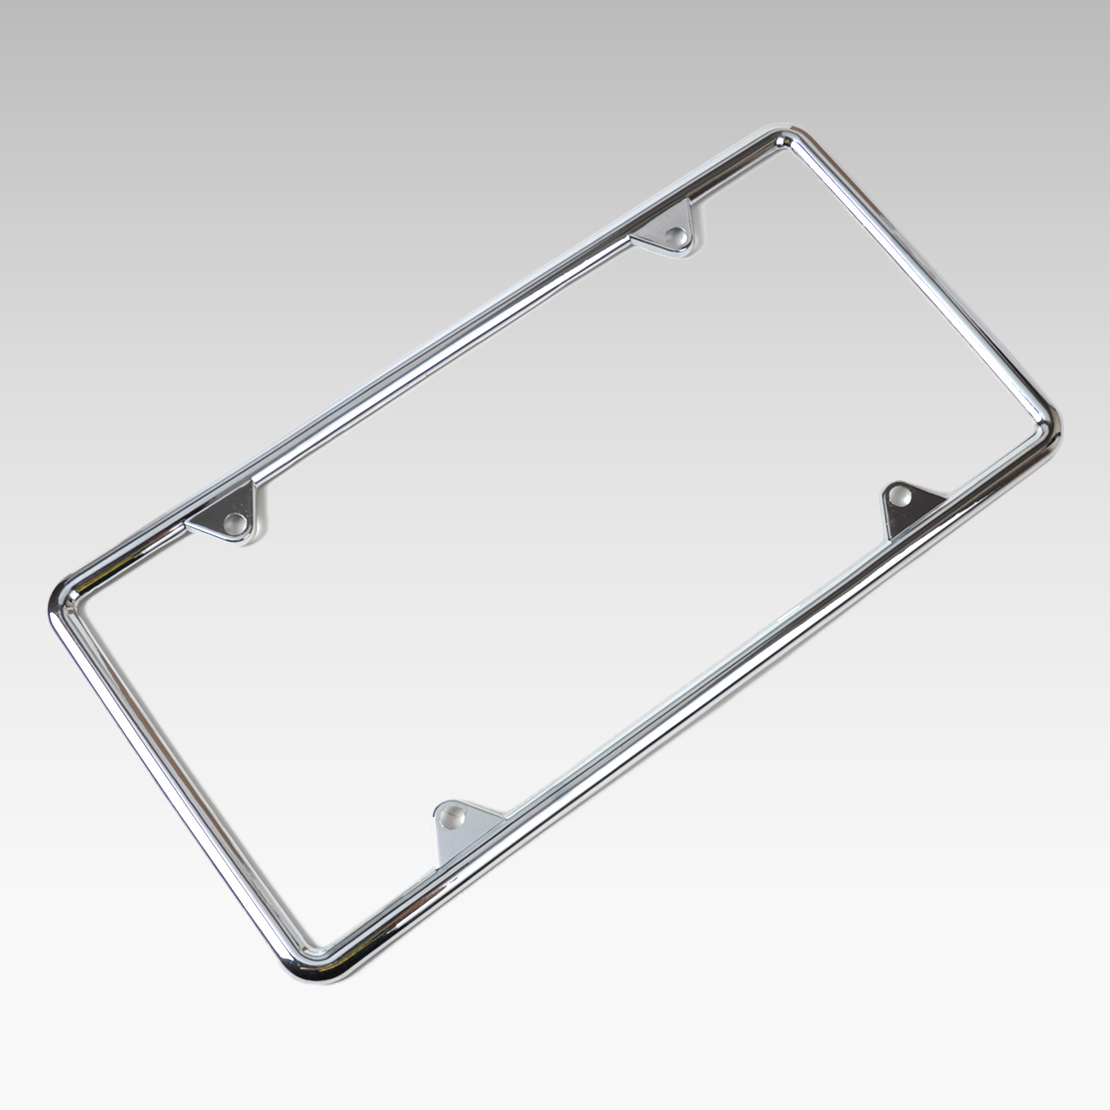 CITALL Zinc Alloy License Plate Frame Universal for Audi BMW VW ...